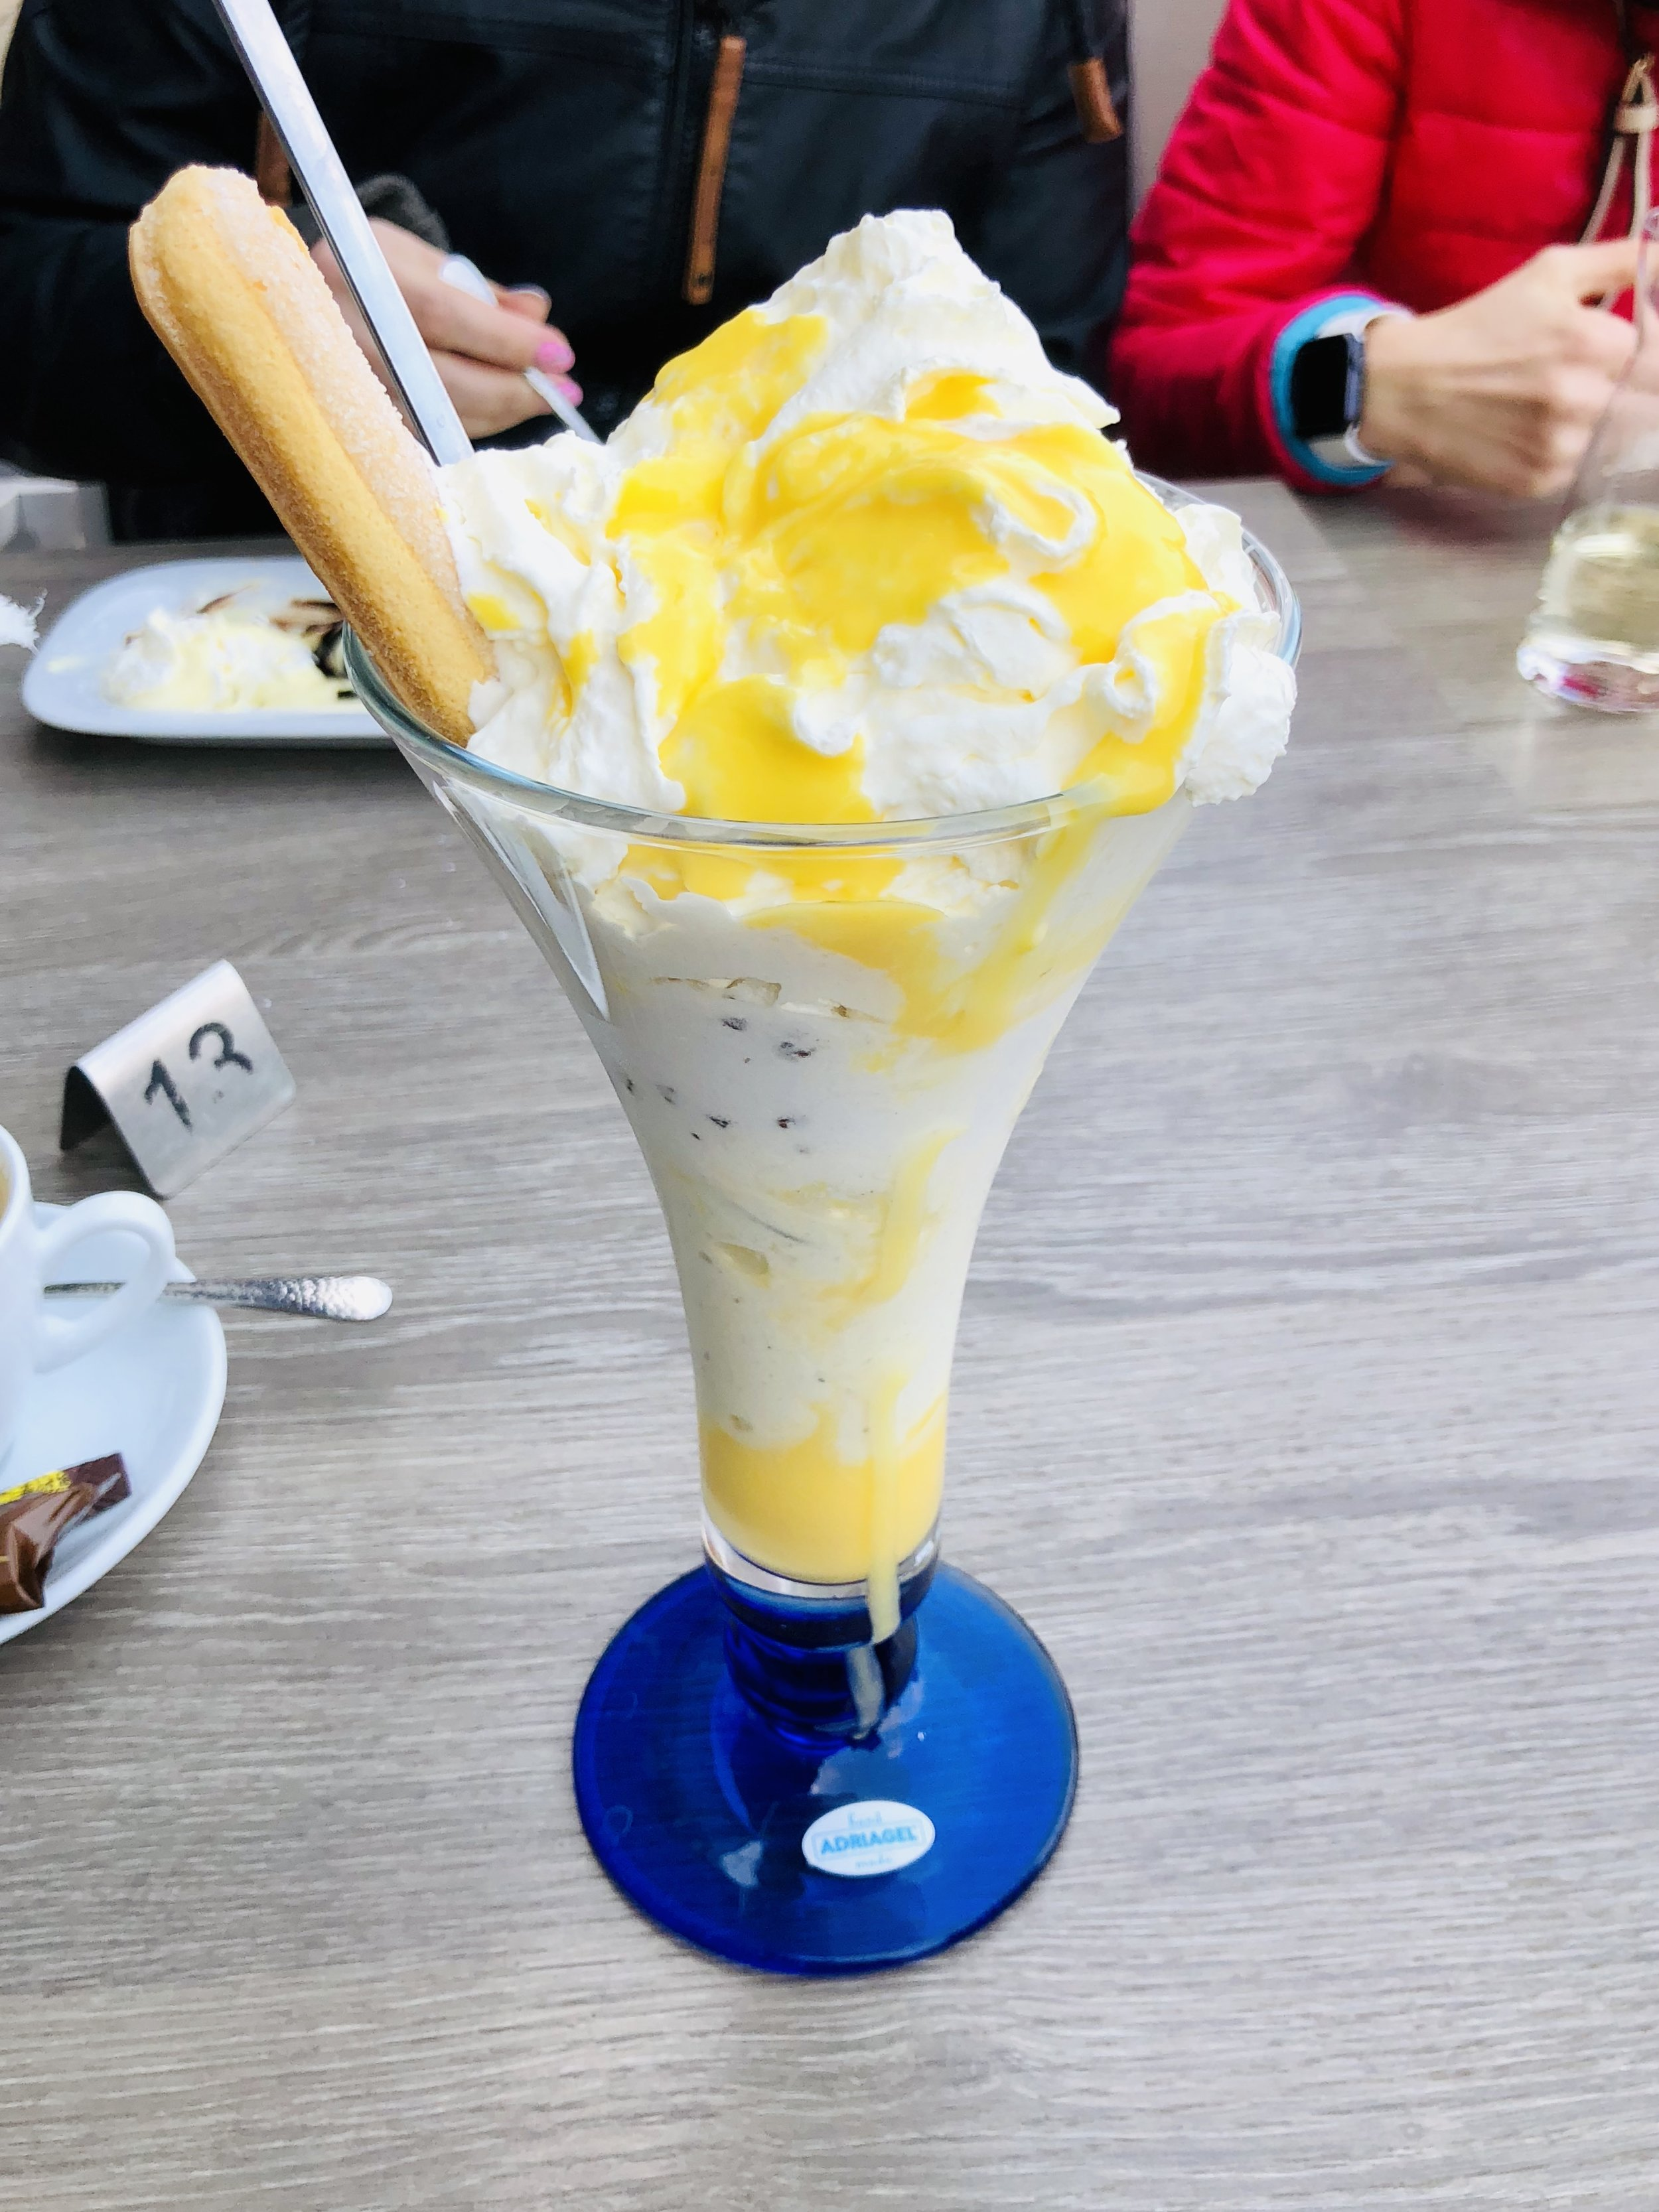 In Germany they have ice cream cafés. They usually open the beginning of May and all they serve are ice cream concoctions. I cannot wait to have an amazing Eisbecher when we are there in June.